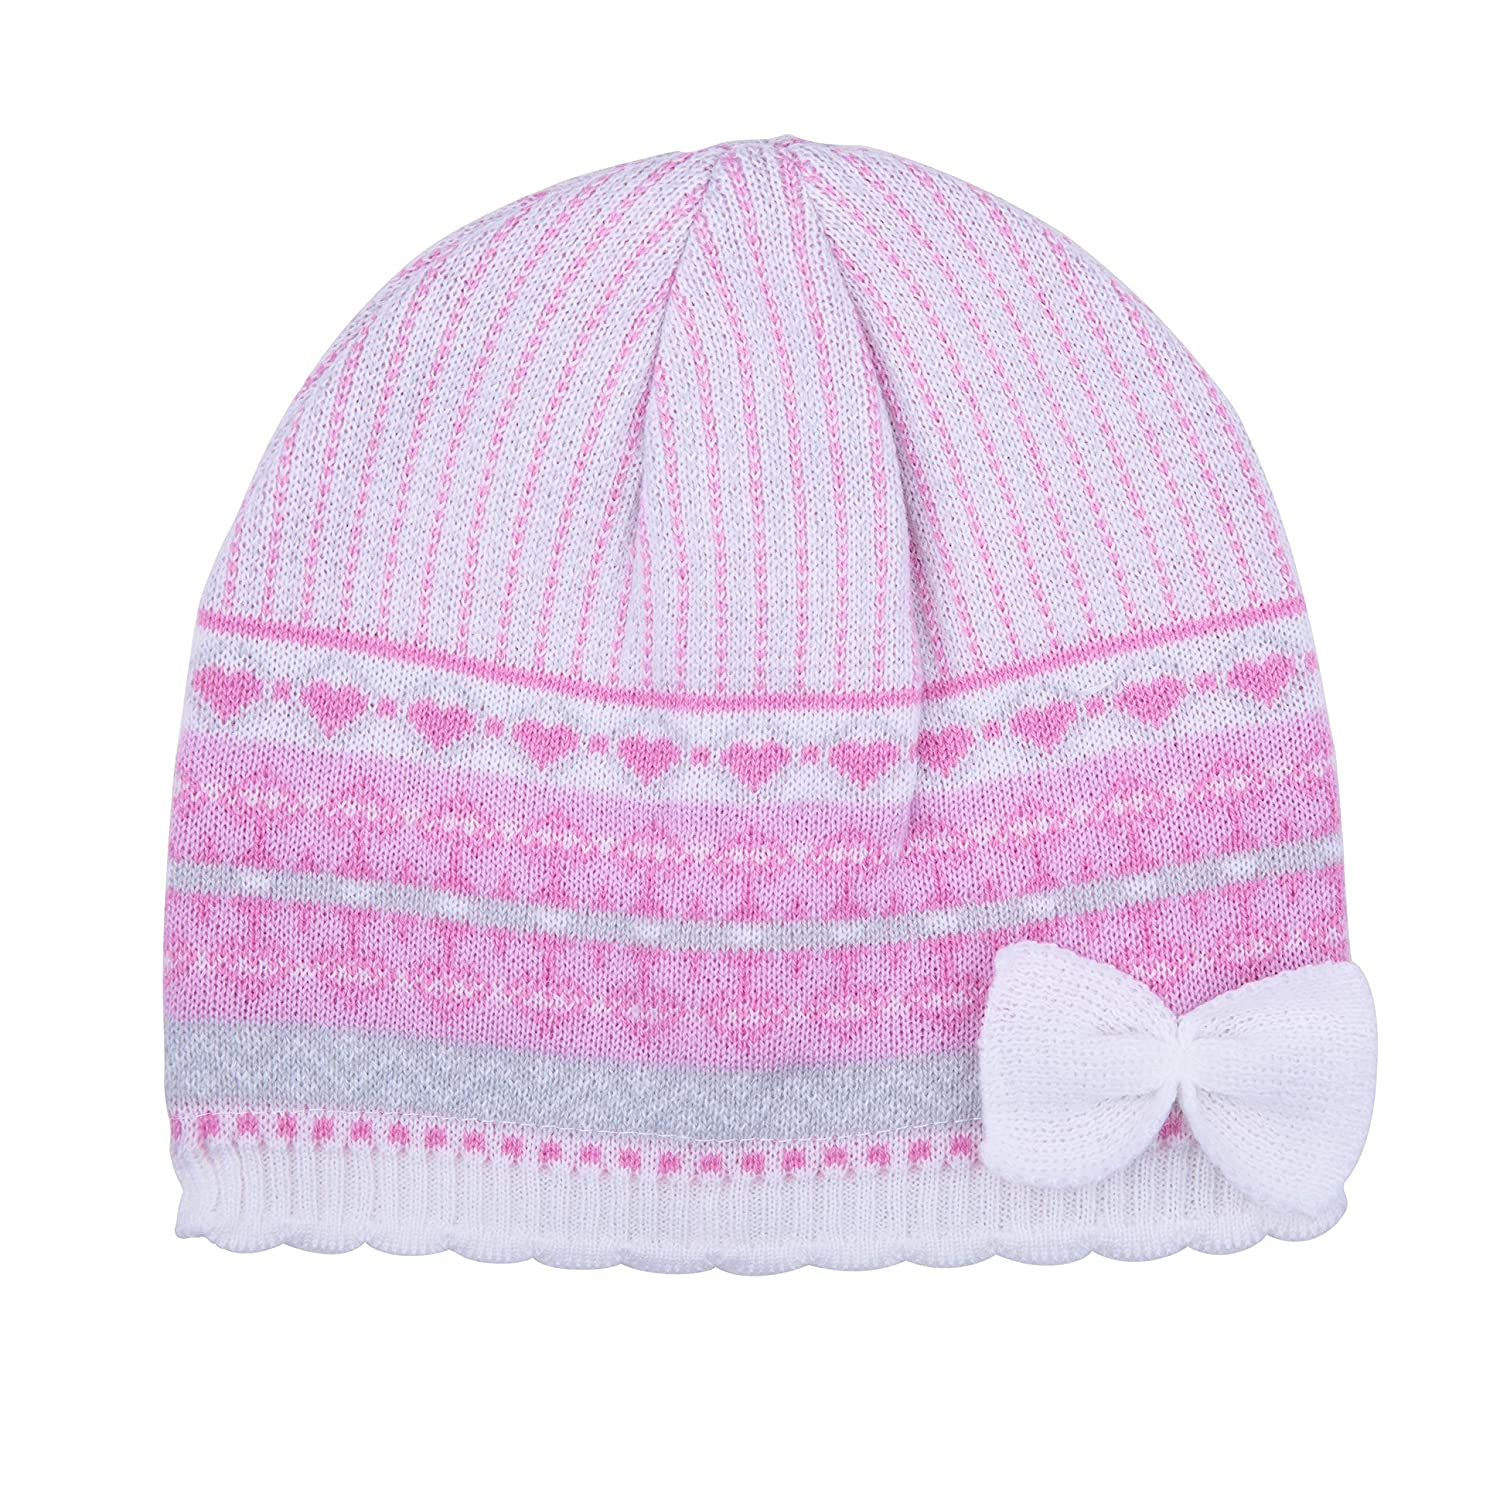 Pengoodles Jacquard Knit Hat with Bow 107